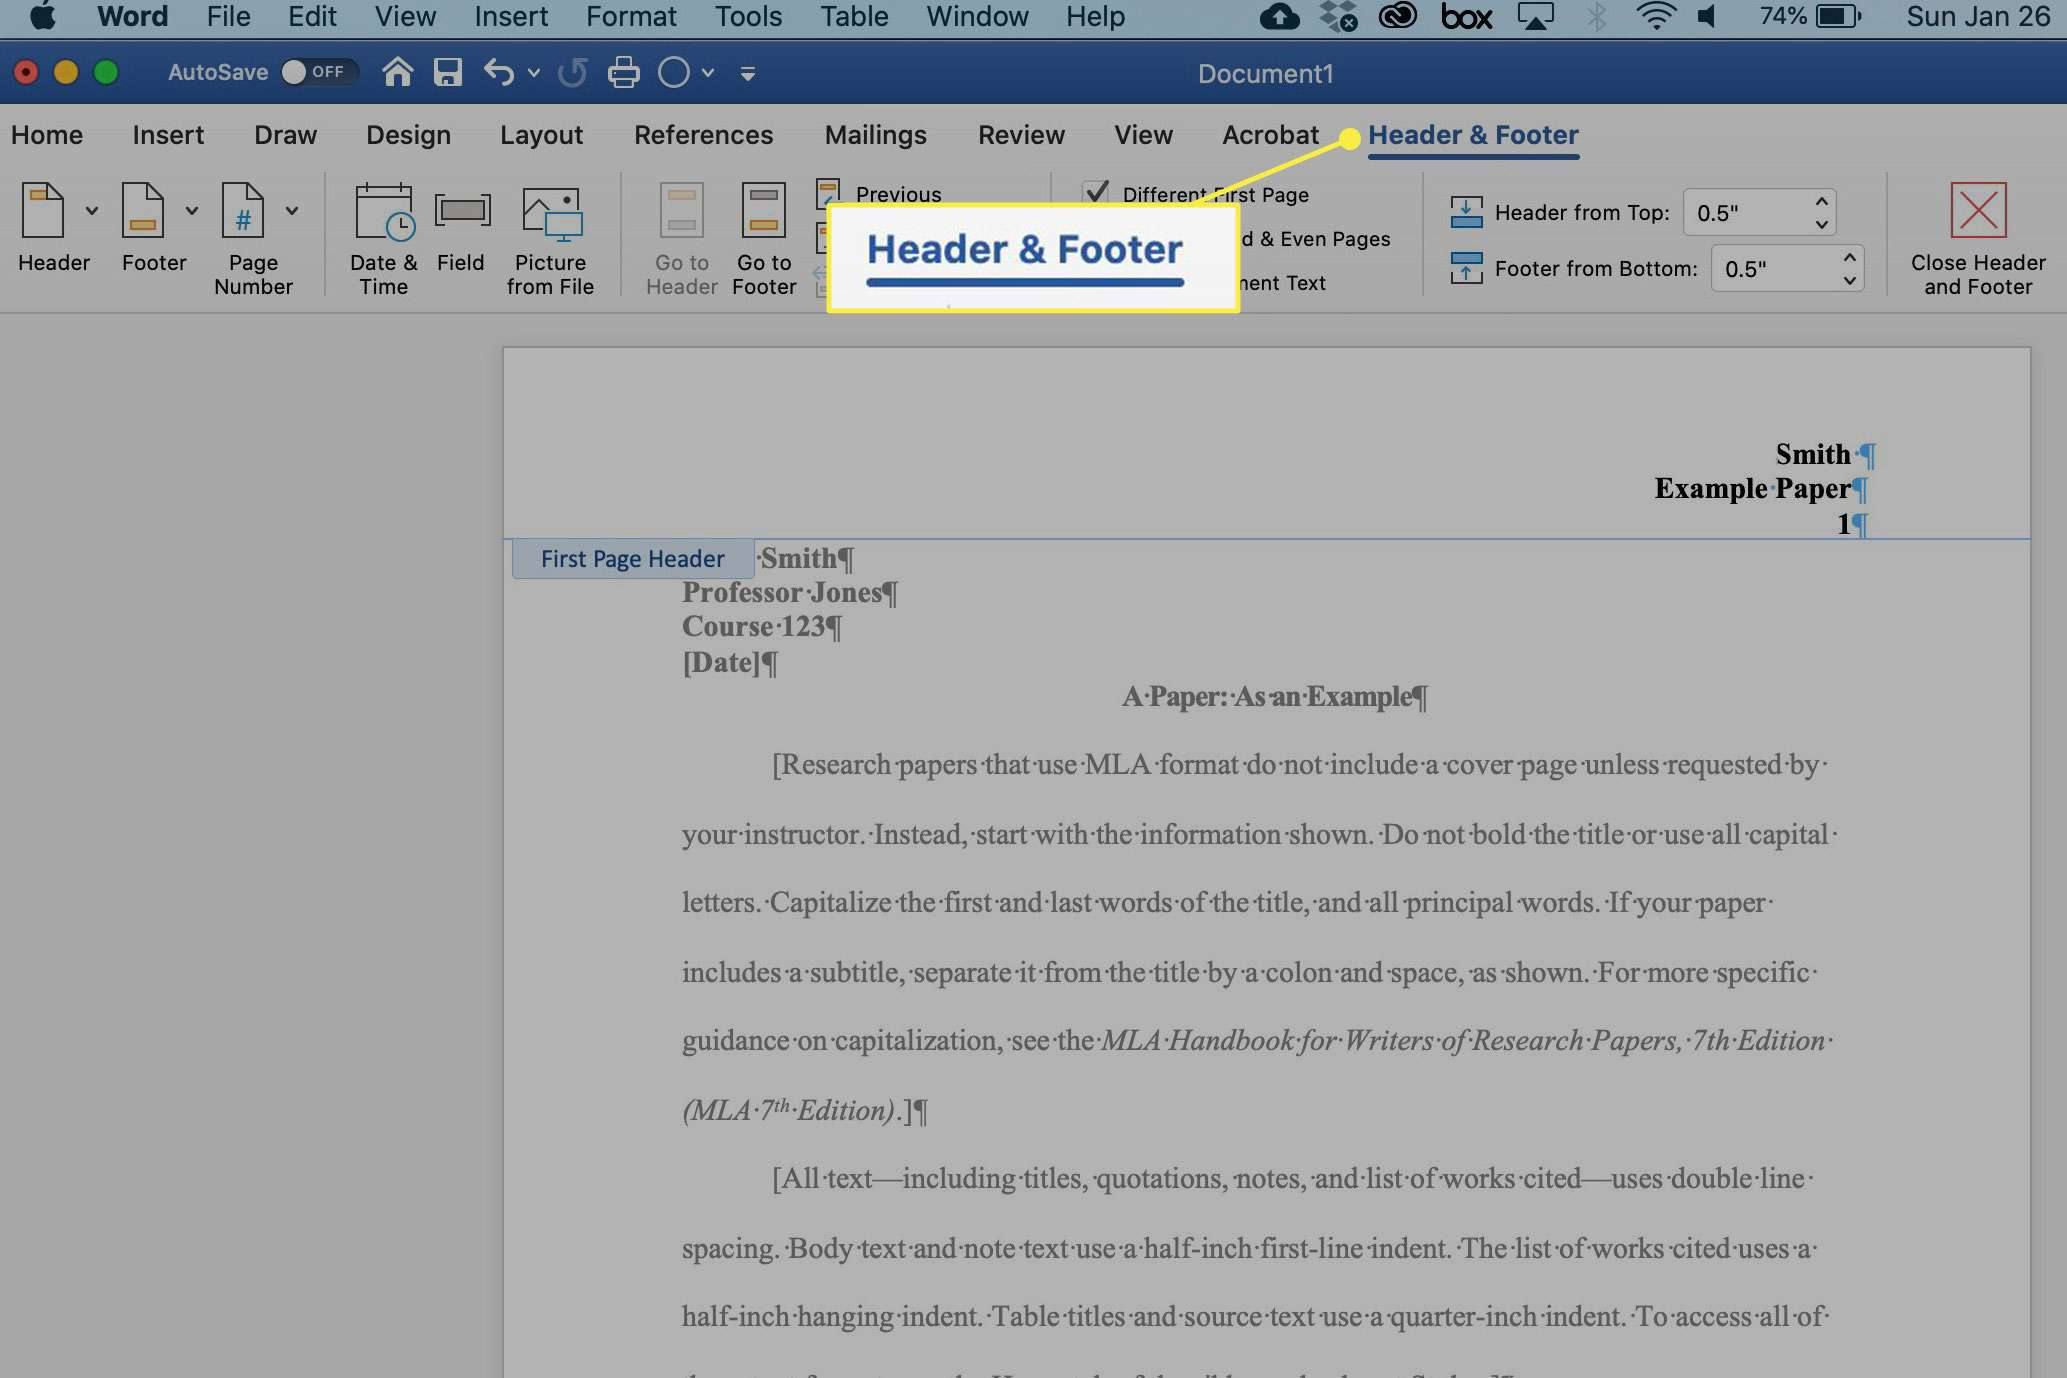 A screenshot of Word with the Header & Footer menu highlighted